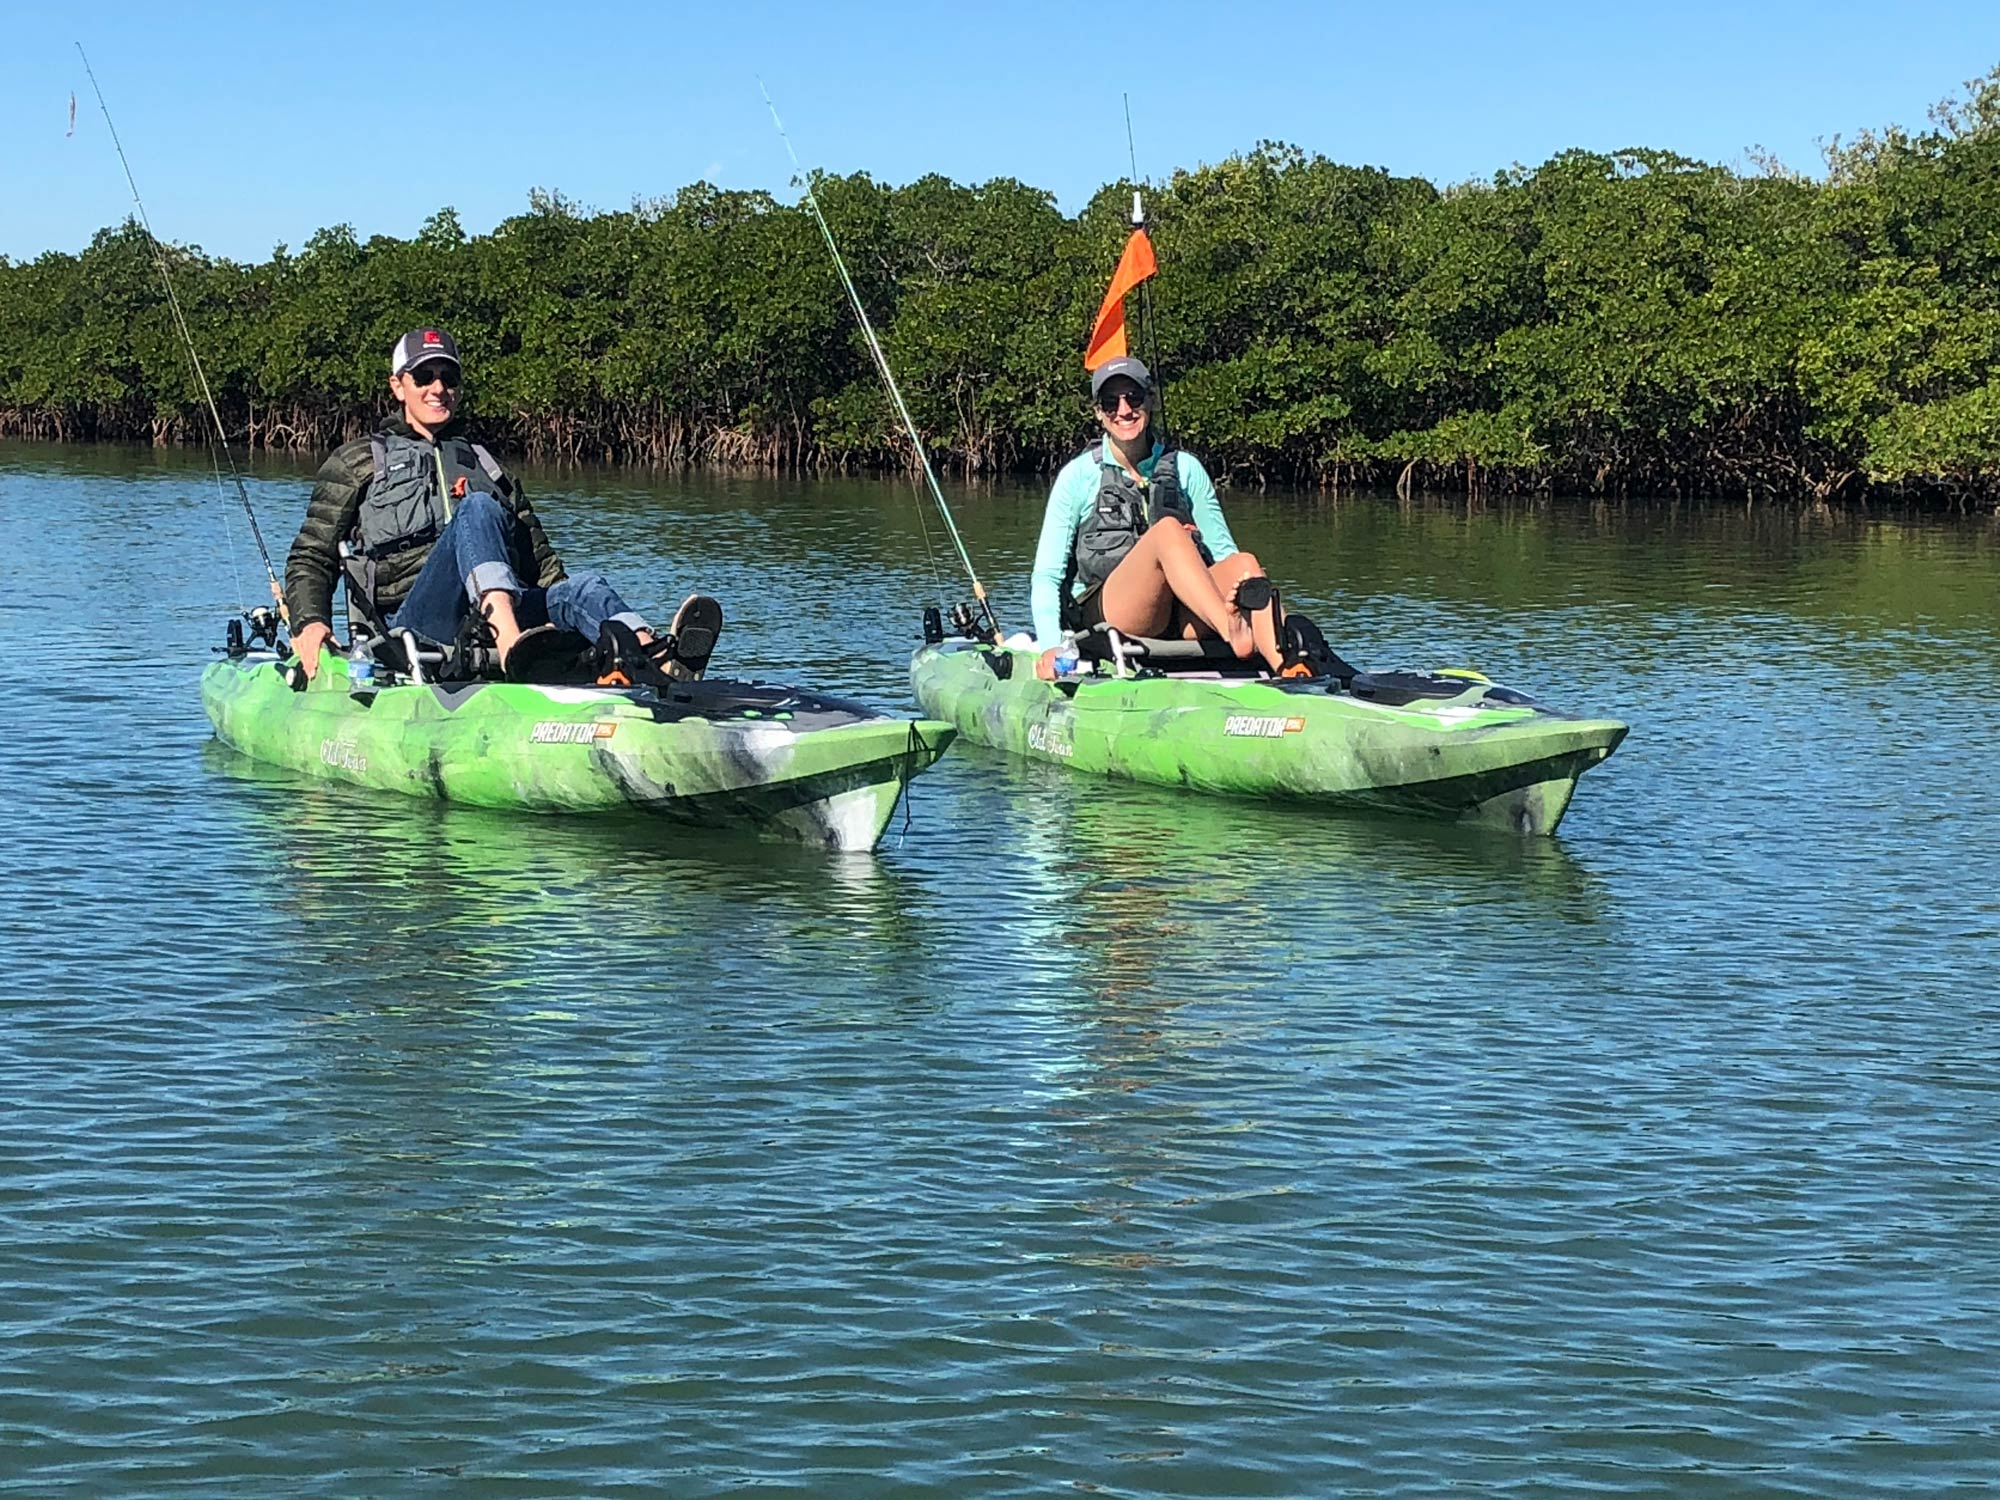 Two anglers on kayaks paddling side by side